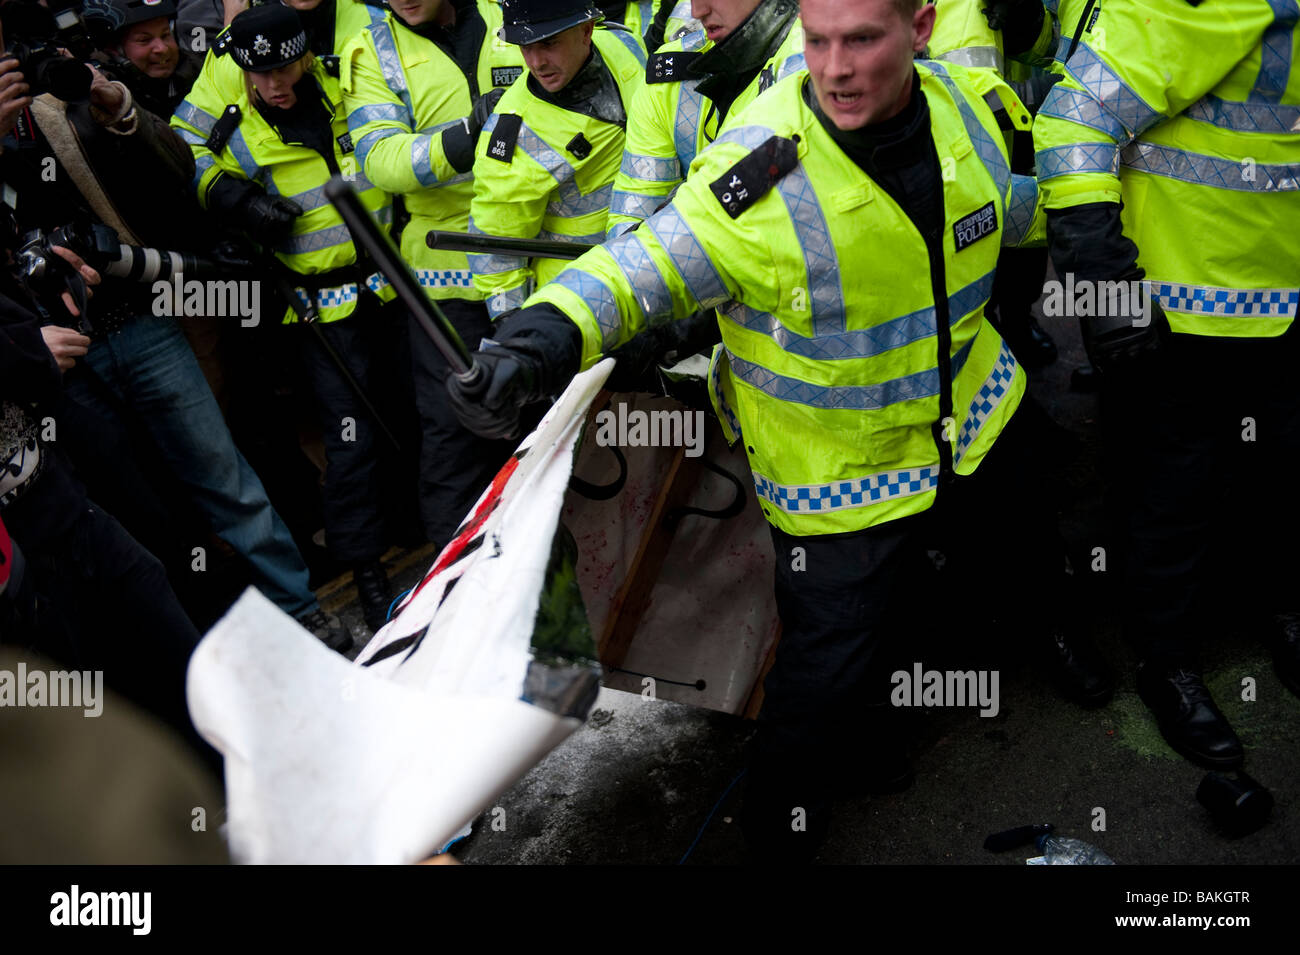 Anti-Capitalist protesters gathered at the Bank of England on the eve of the G20 Summit, which turned violent with - Stock Image